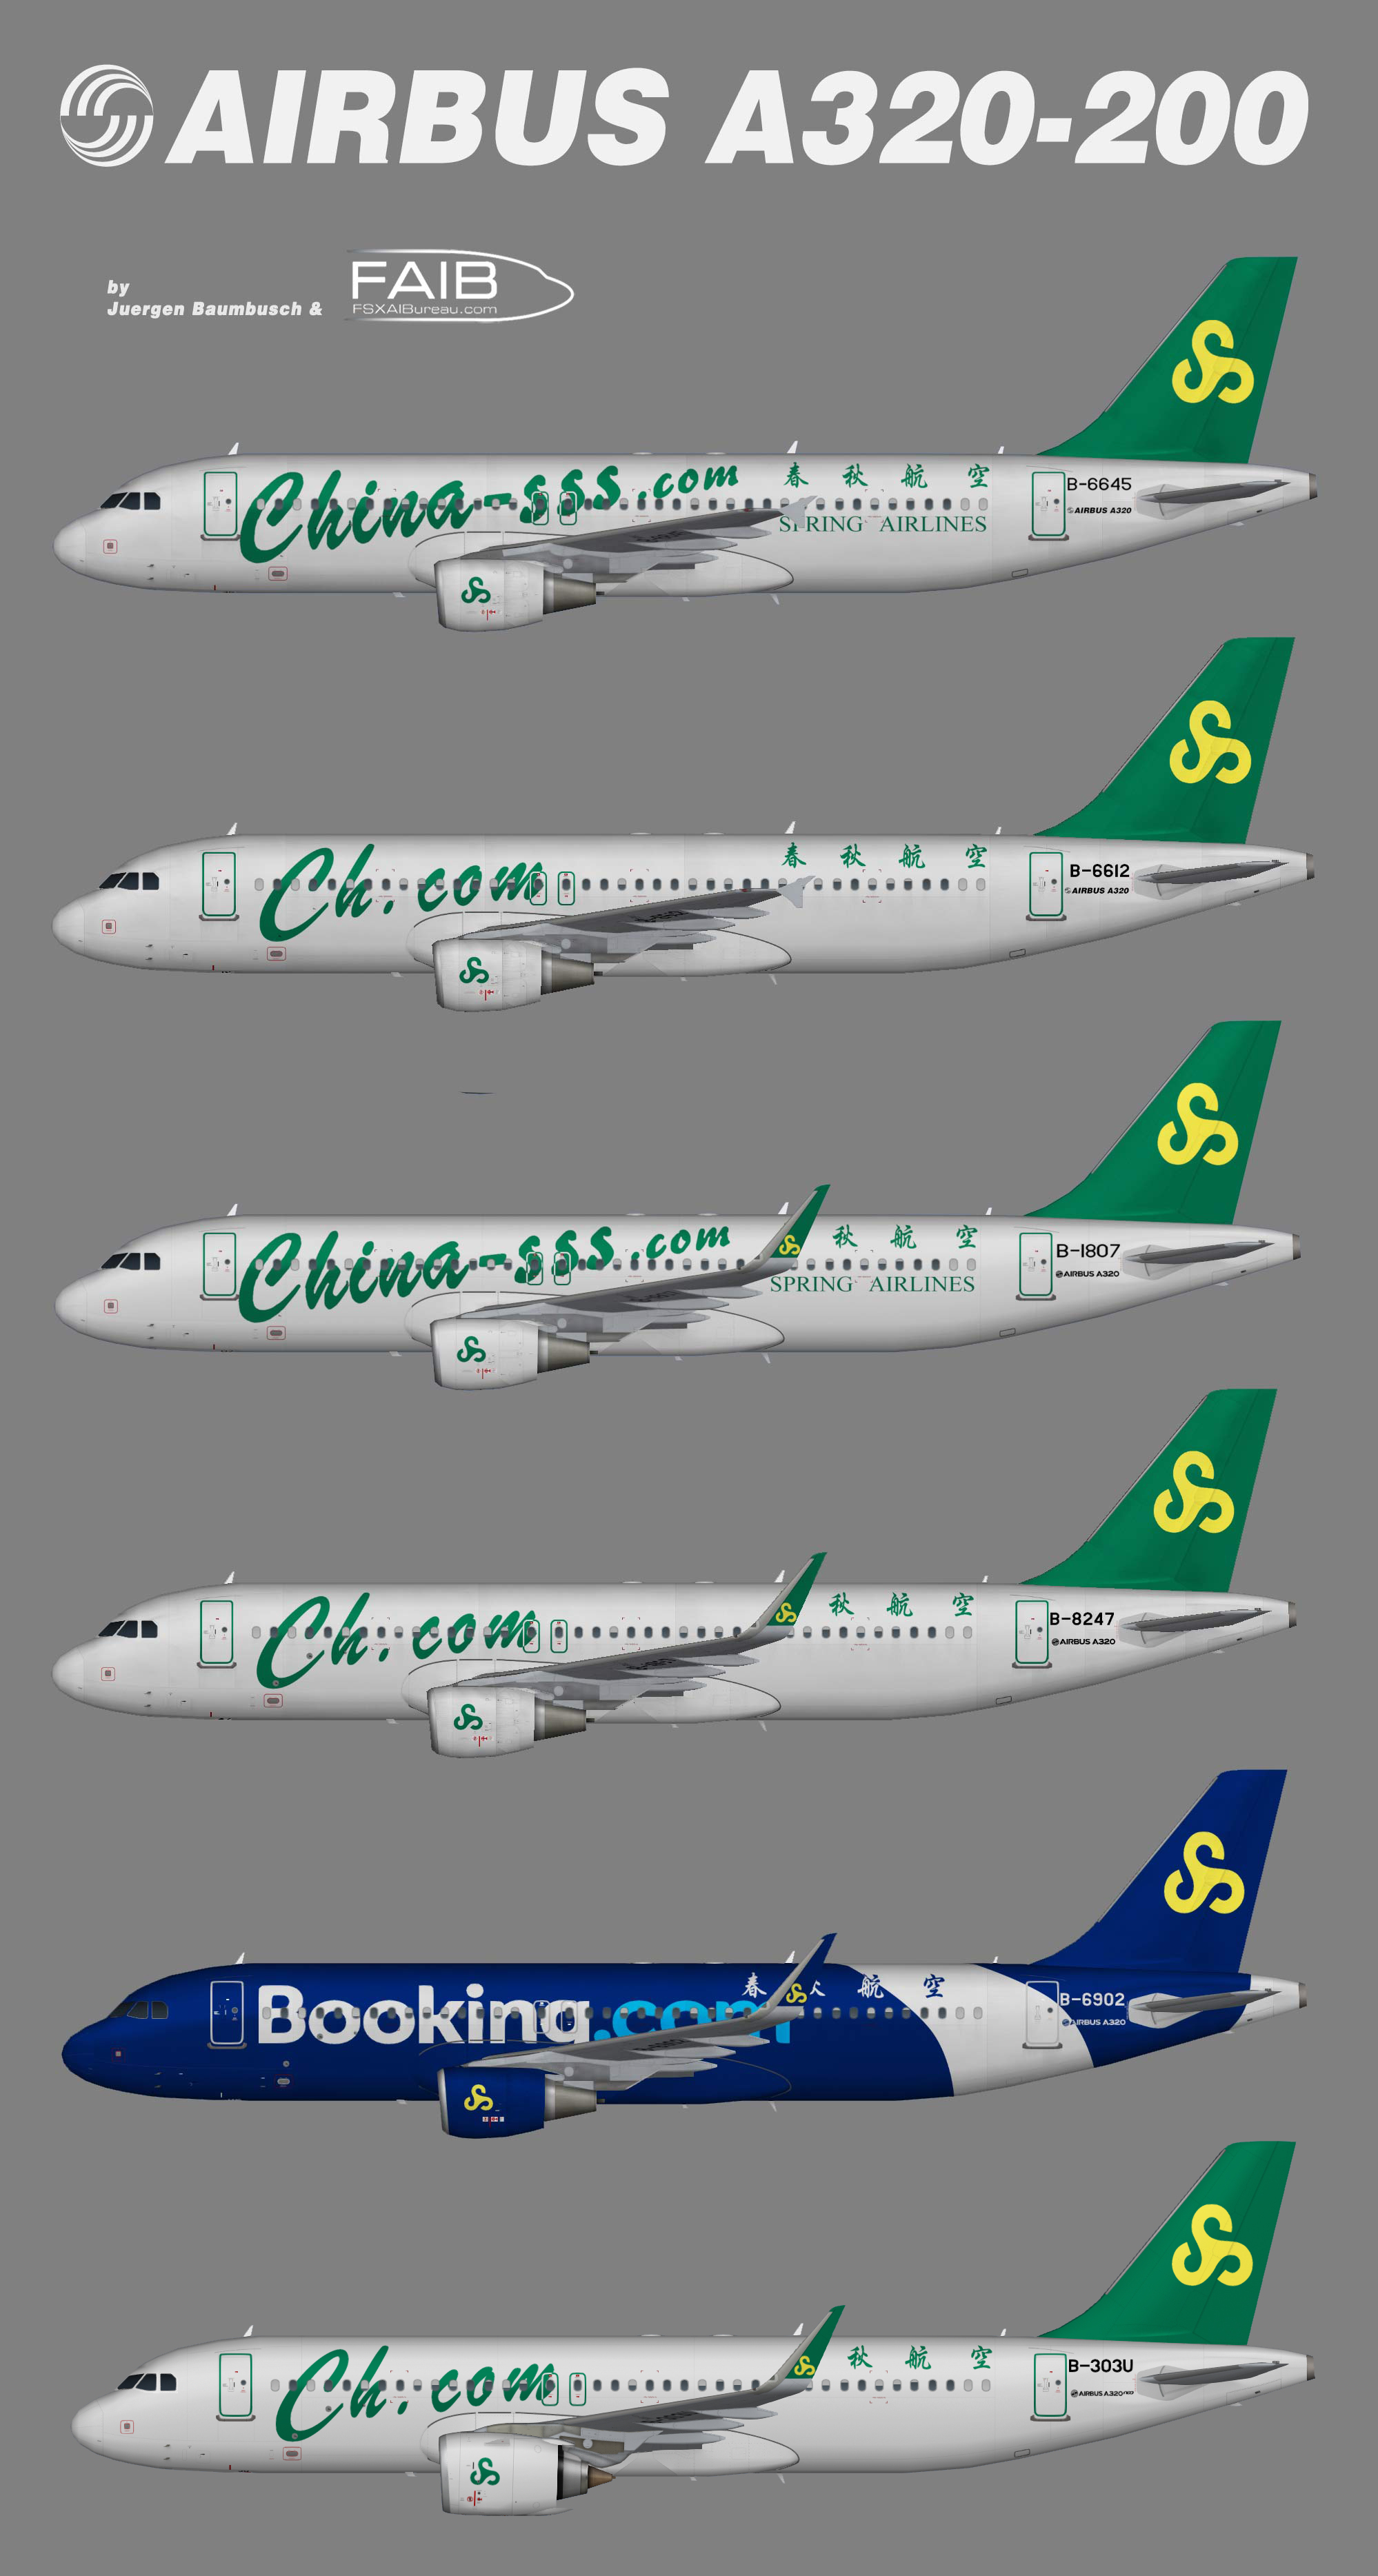 Spring Airlines Airbus A320-200